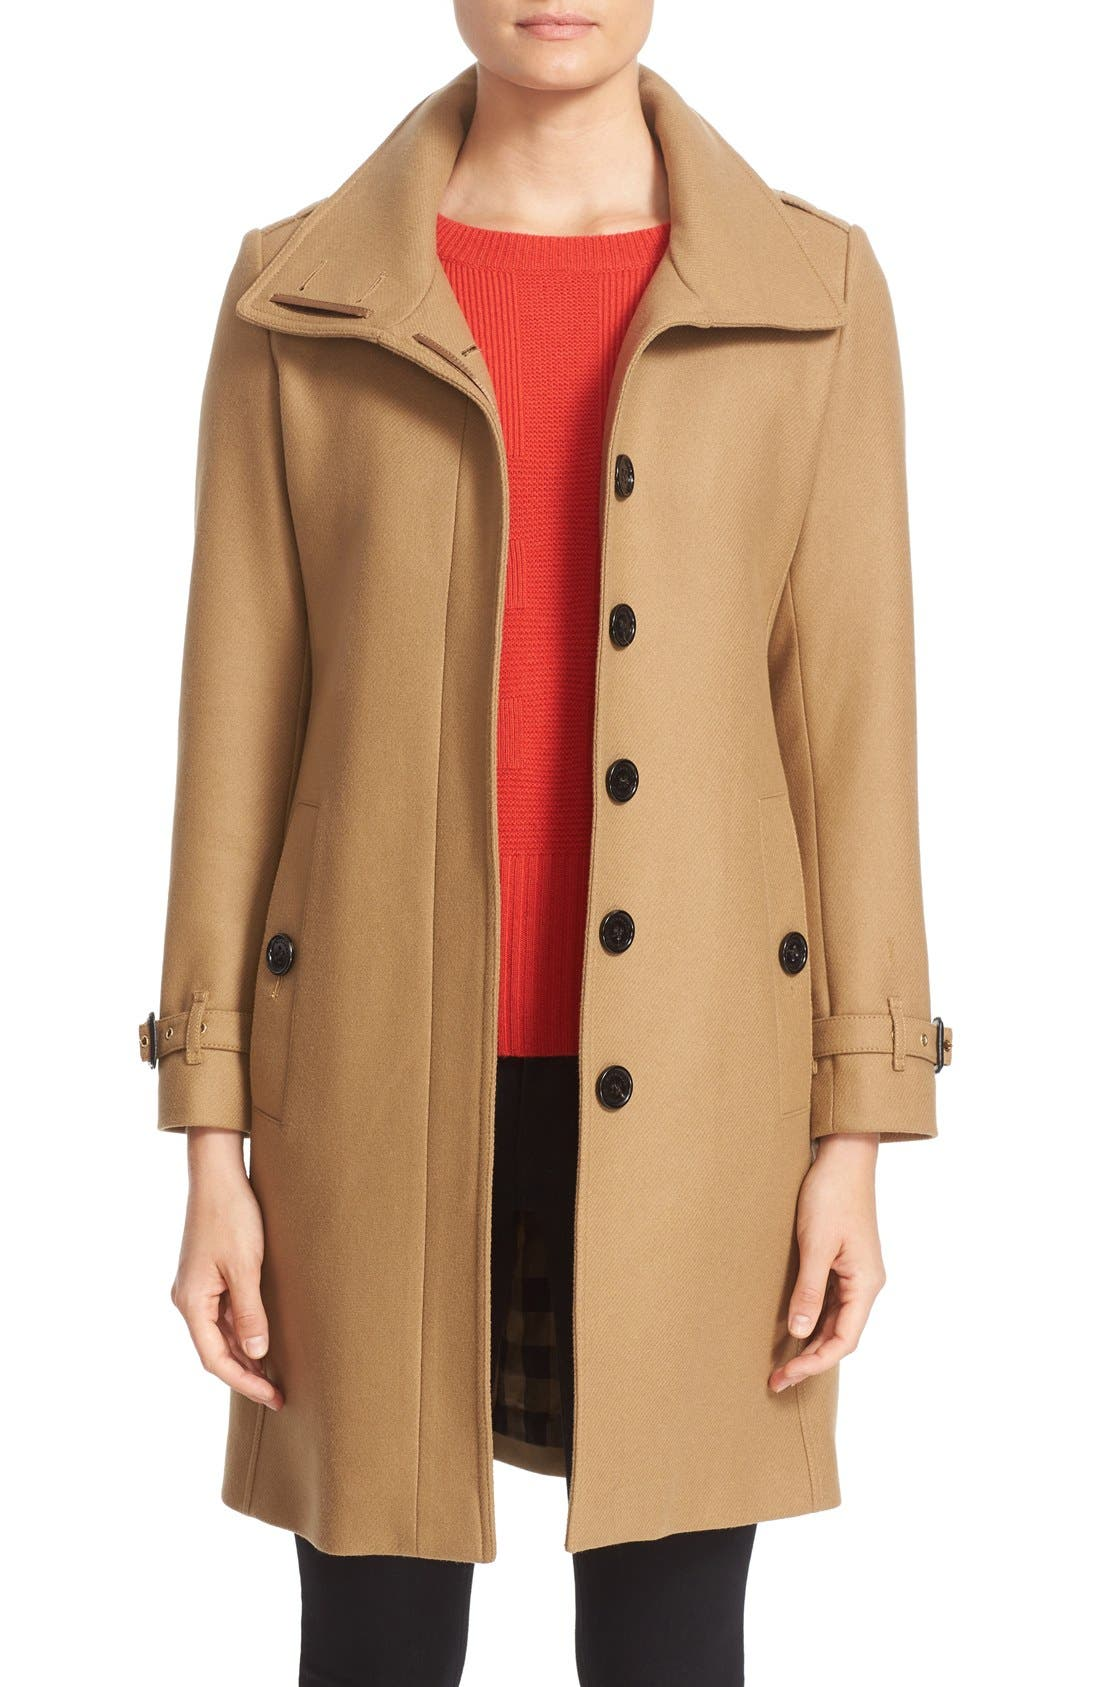 Alternate Image 1 Selected - Burberry Gibbsmoore Funnel Collar Trench Coat (Nordstrom Exclusive)